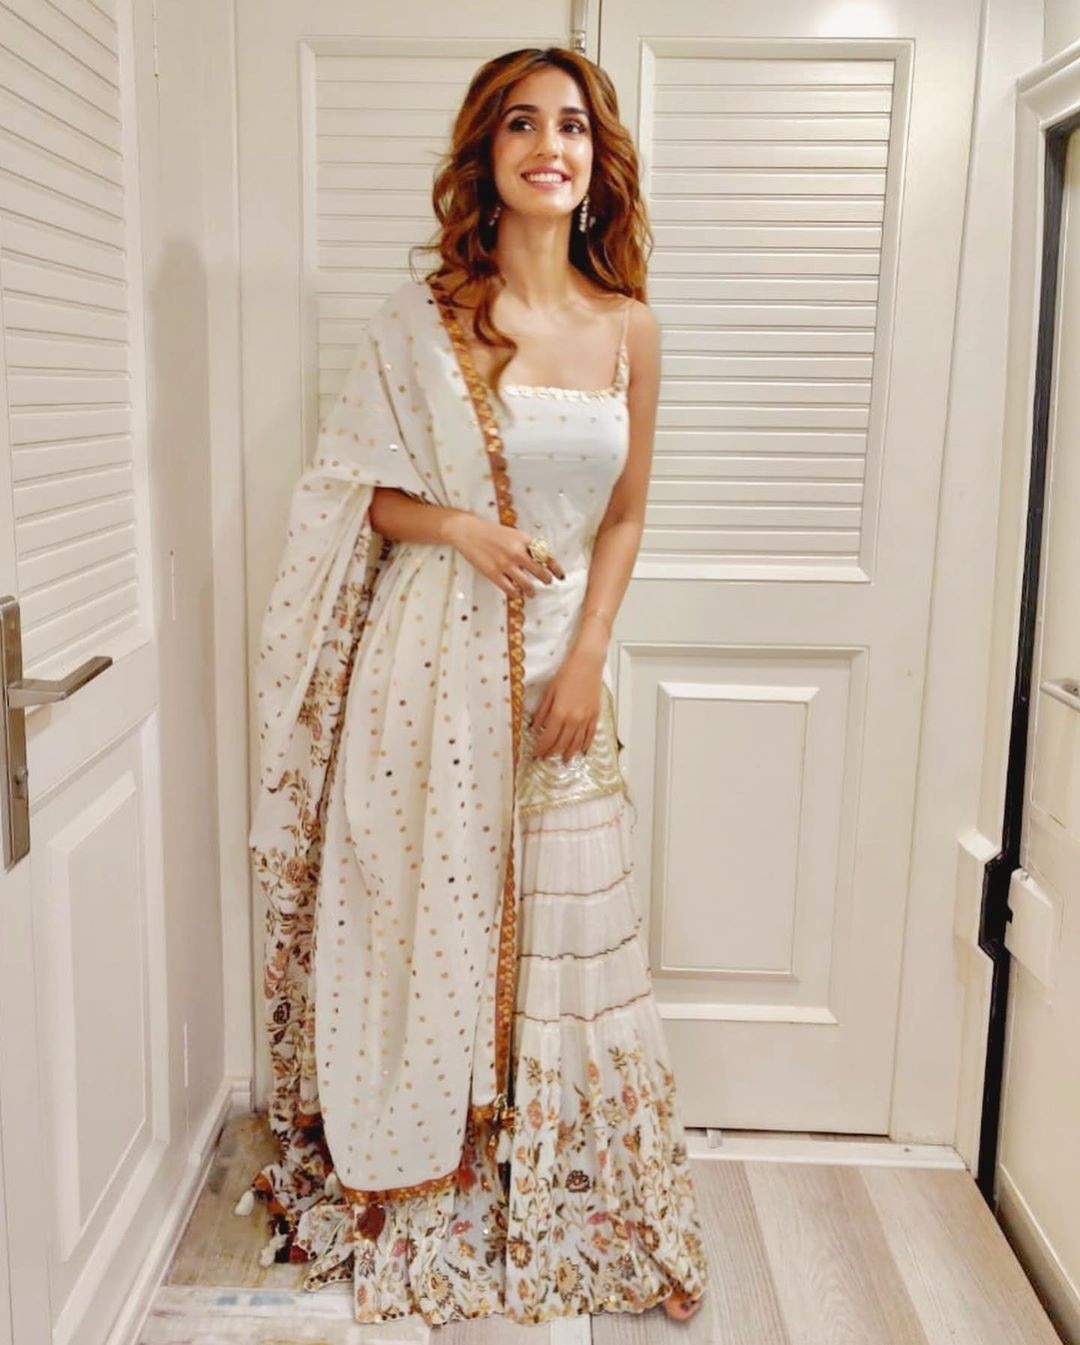 Disha Patani oozes elegance in white and golden sharara set for Radhe's muhurat puja - Lifestyle News